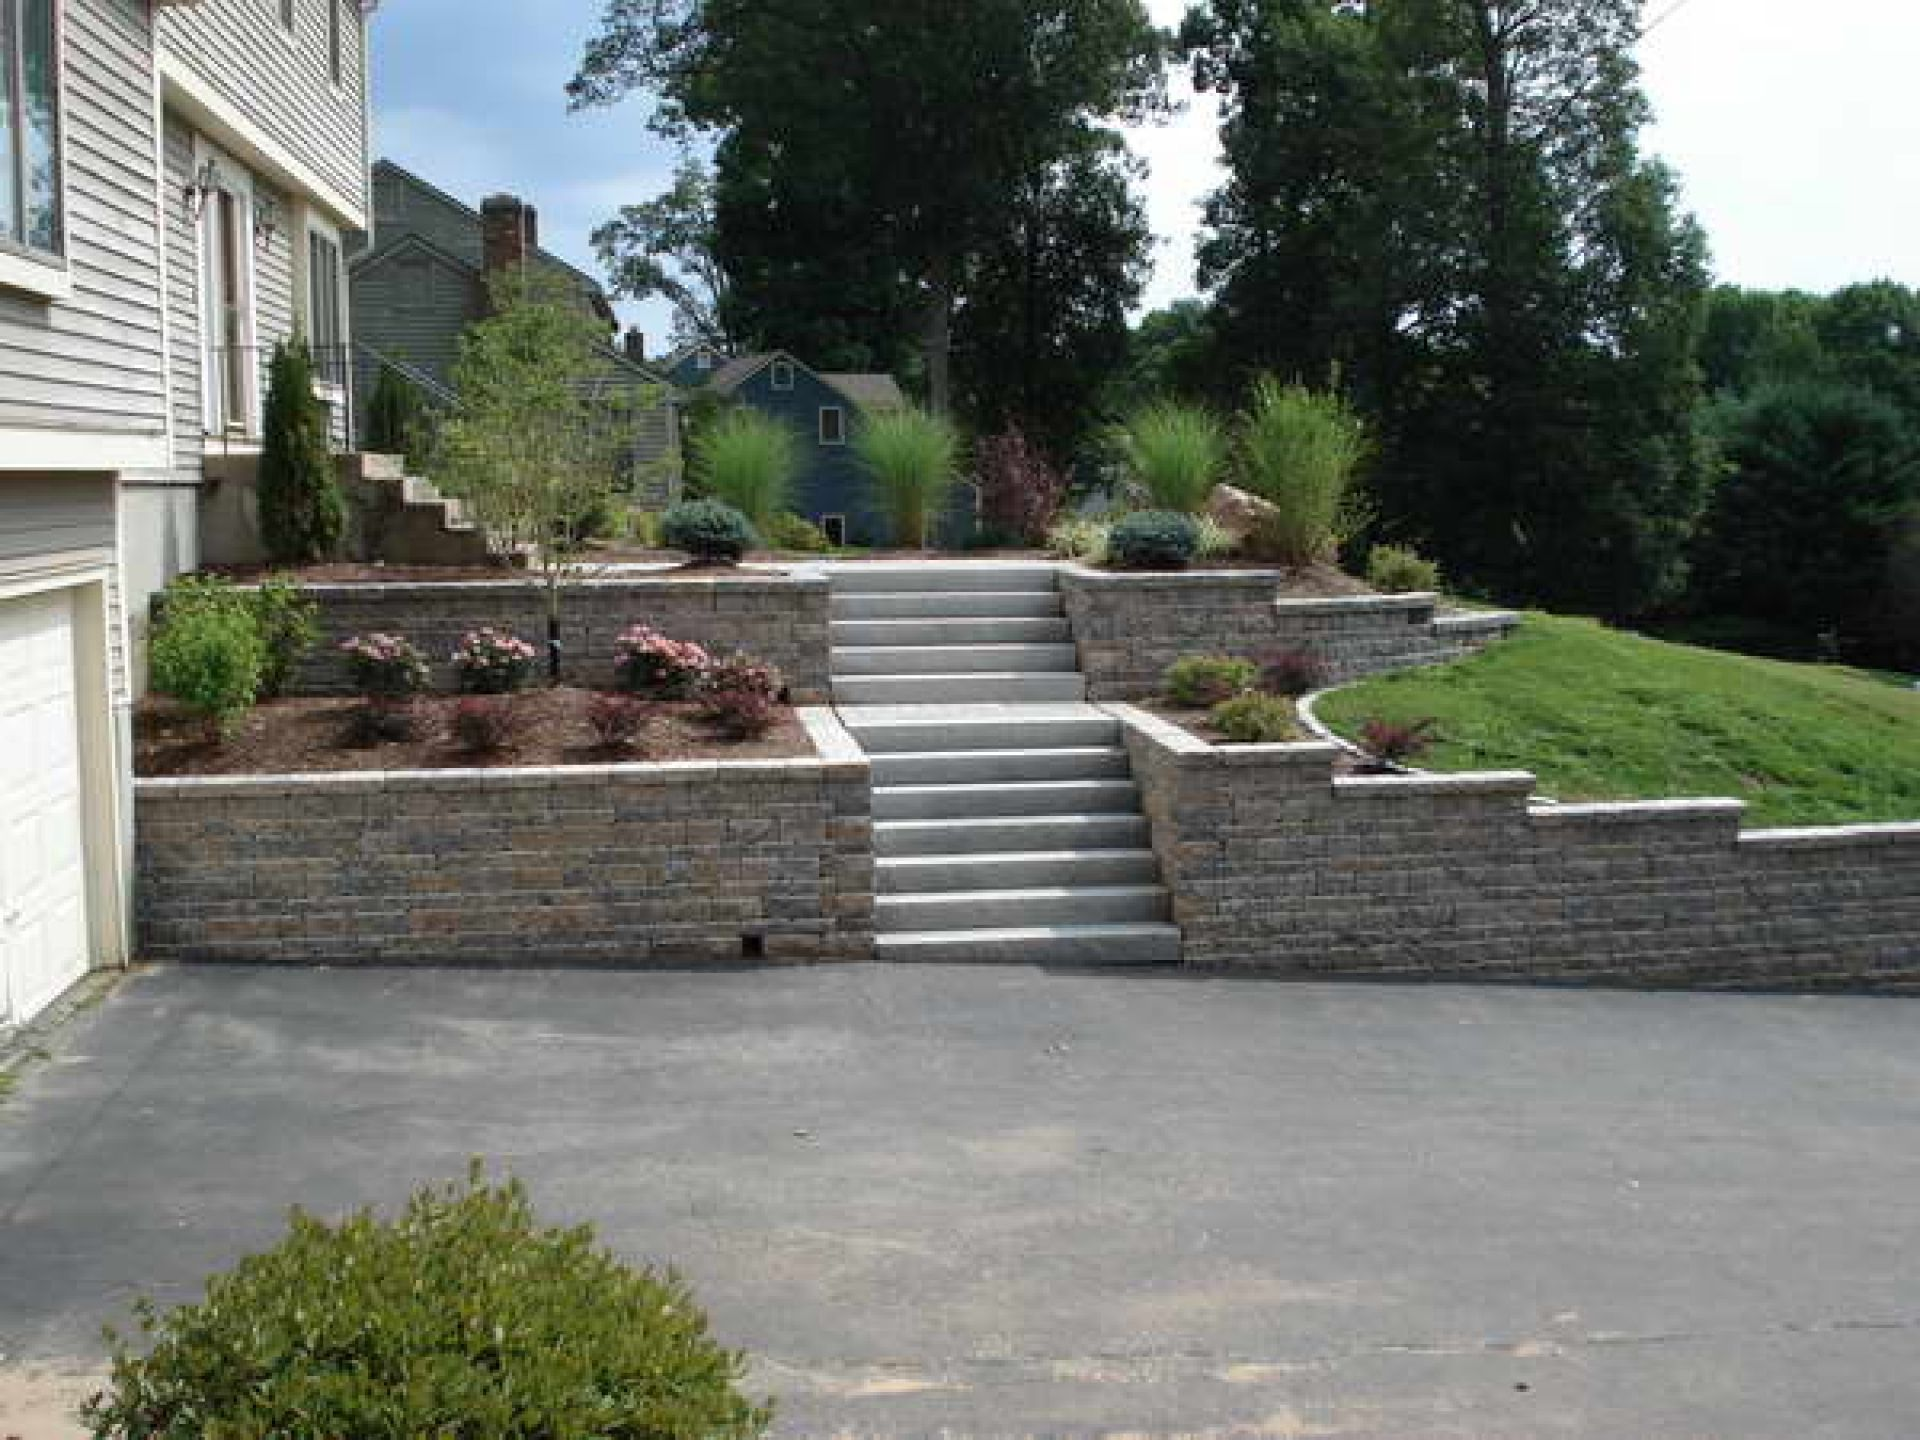 Landscape ideas for sloped front yard - Find This Pin And More On Front Yard By Edaamo